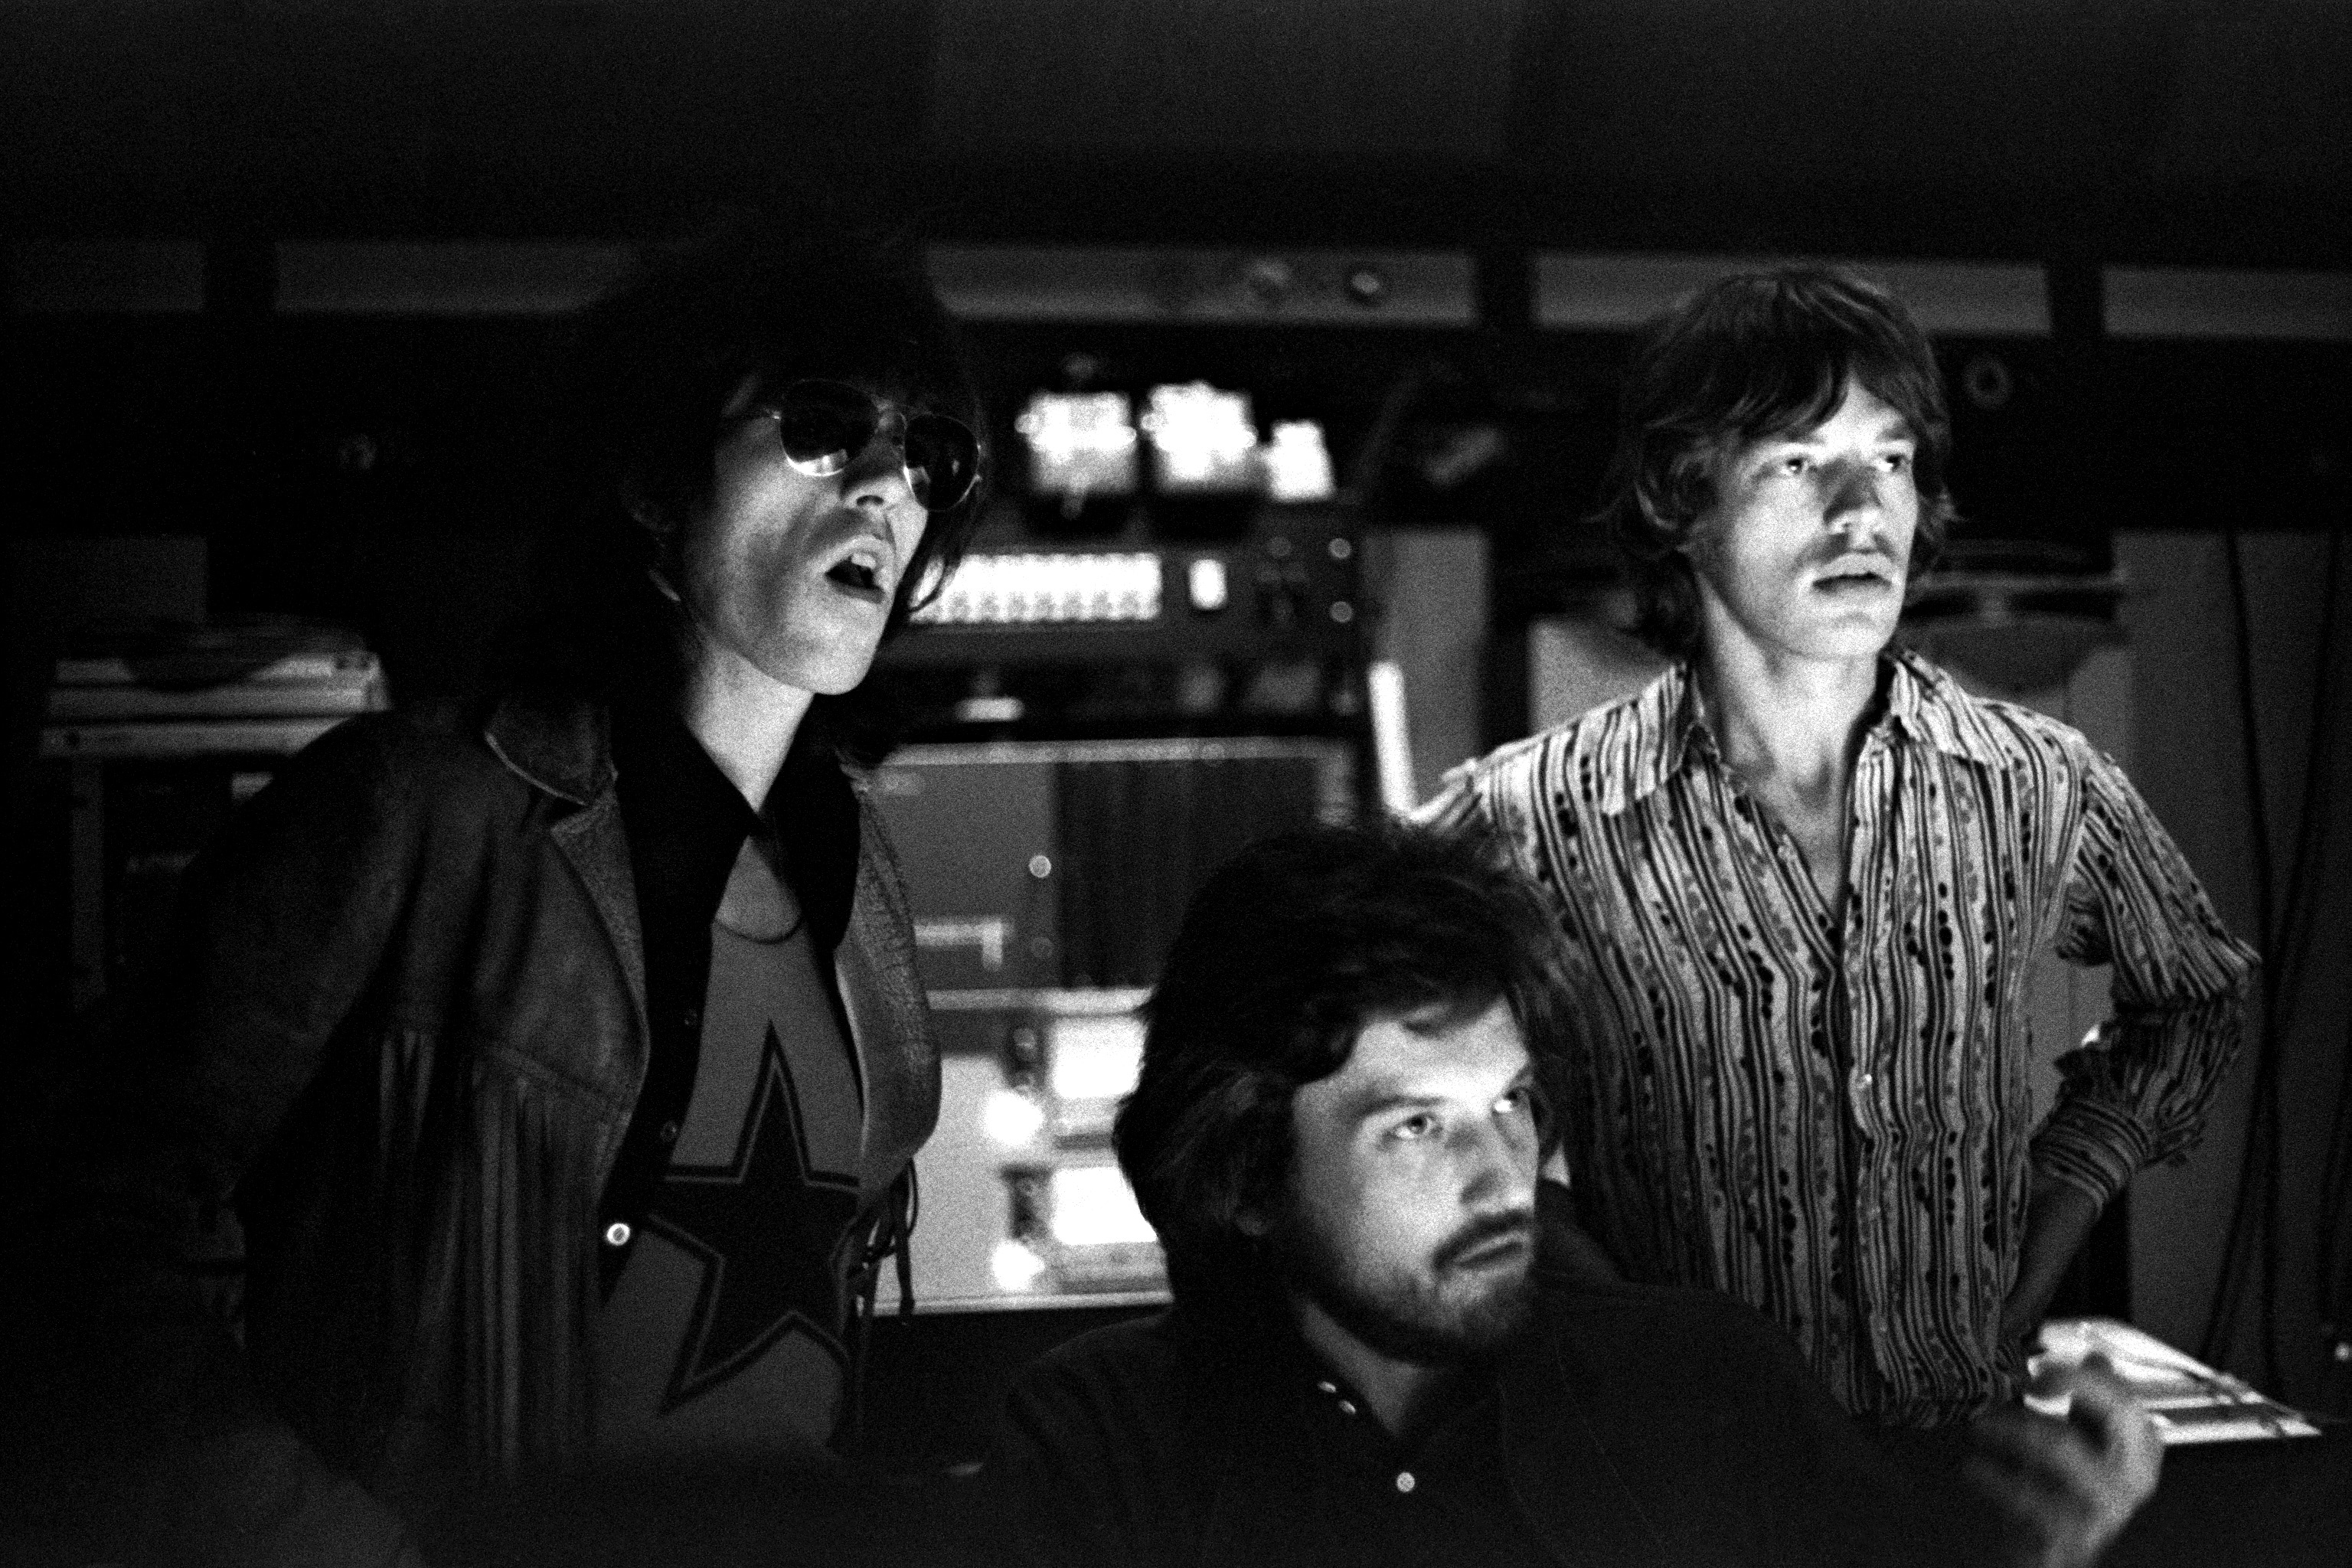 """English musicians Keith Richards and Mick Jagger of the Rolling Stones along with producer Jimmy Miller work on the mixing of their """"Let It Bleed"""" album at The Elektra Studios in October, 1969 in Los Angeles, California."""